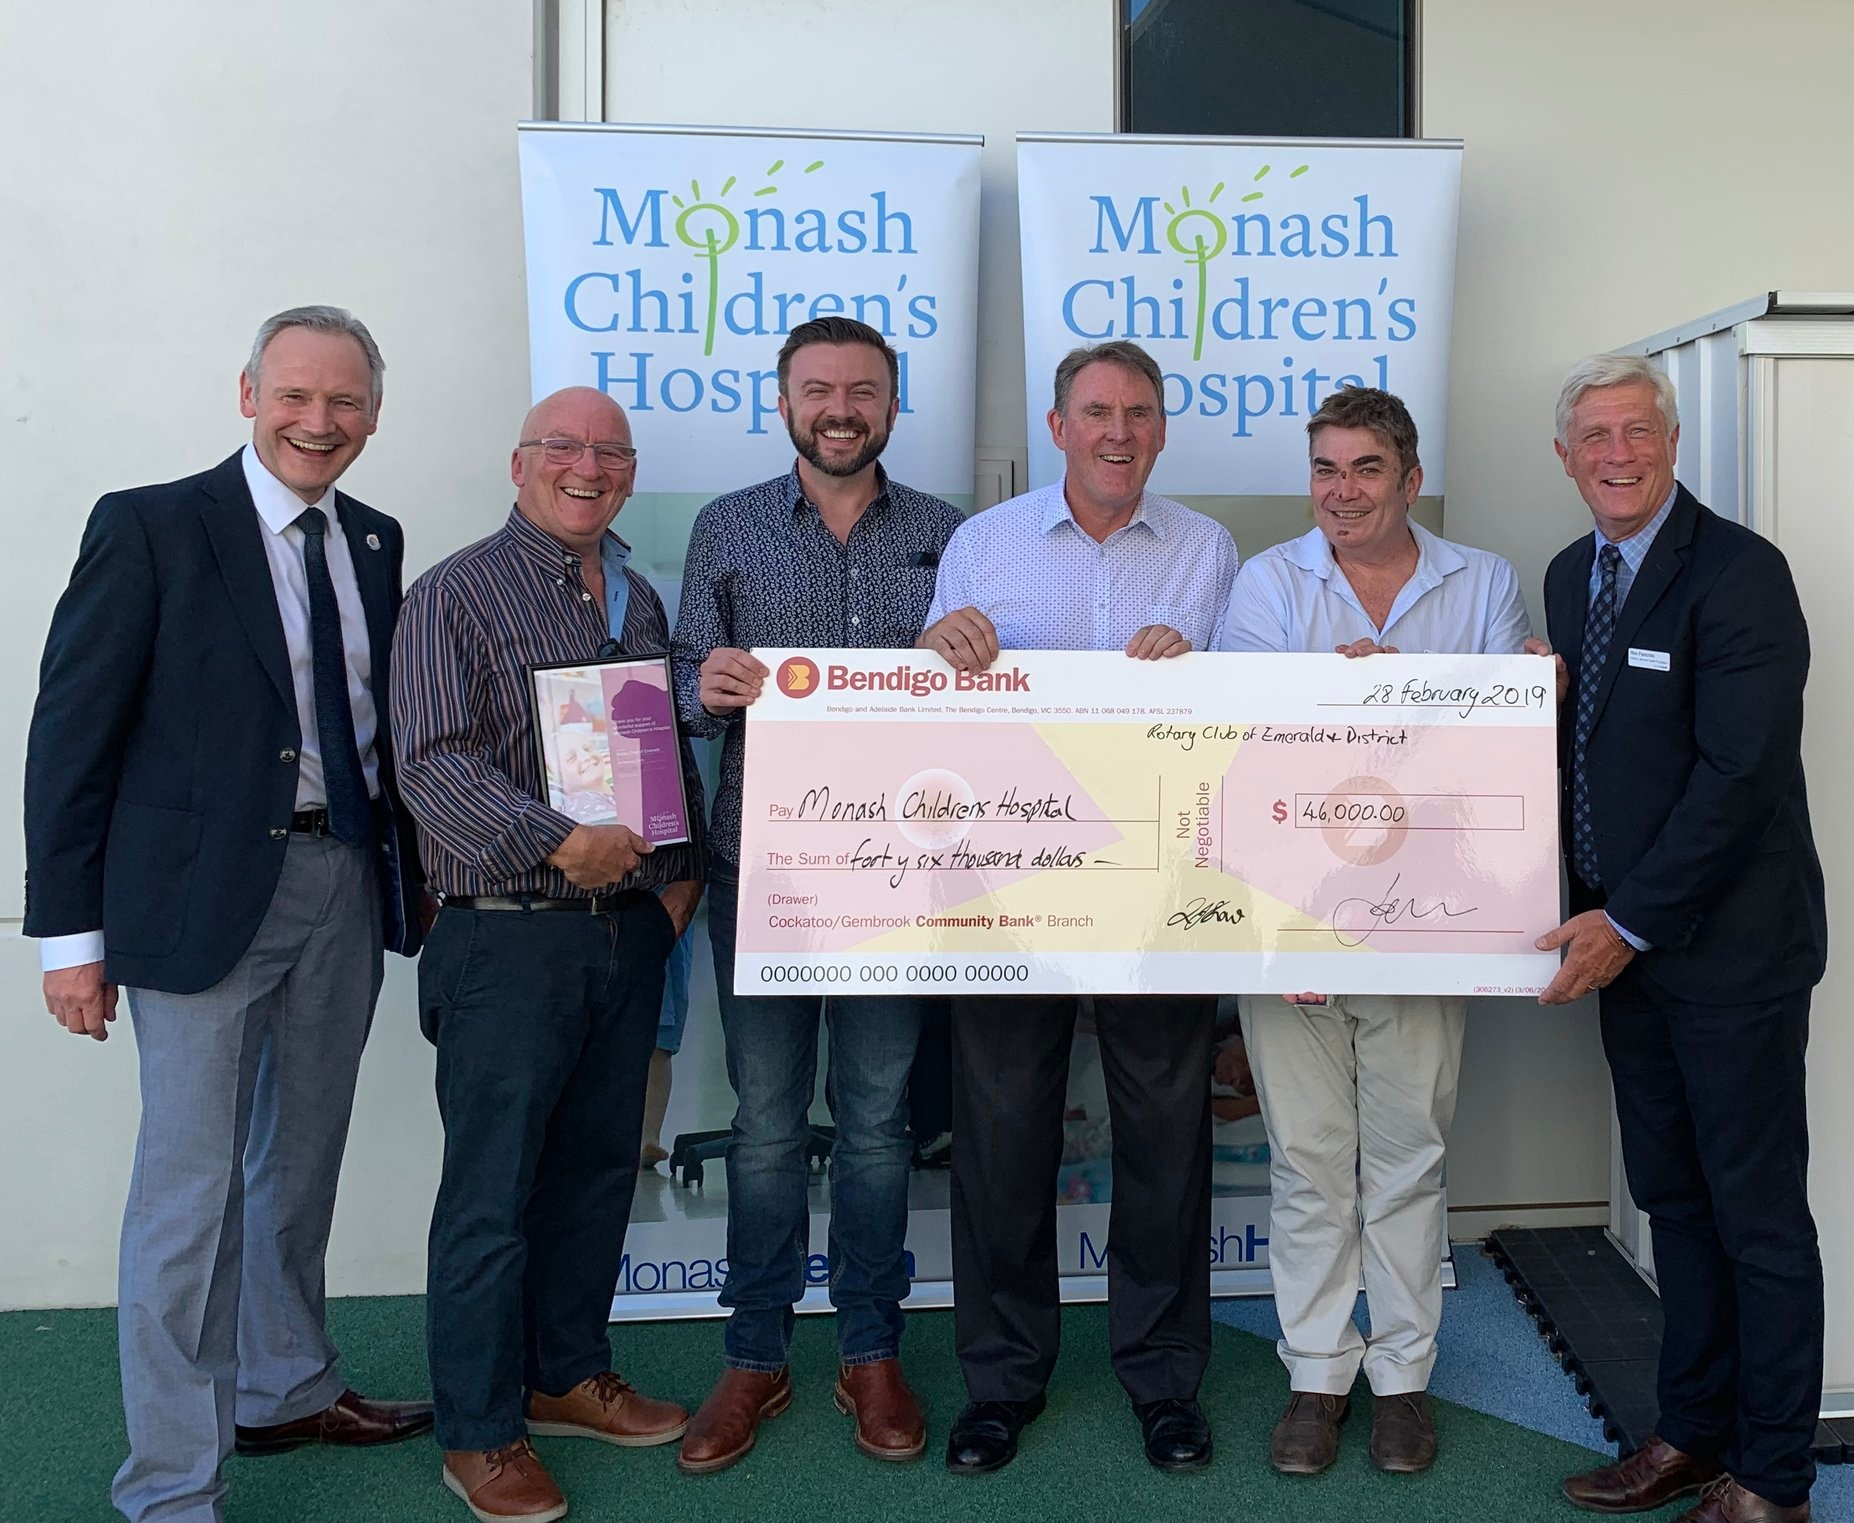 Our MANAGING DIRECTOR Ben O'ConnoR handing a cheque over to Monash Children's Hospital